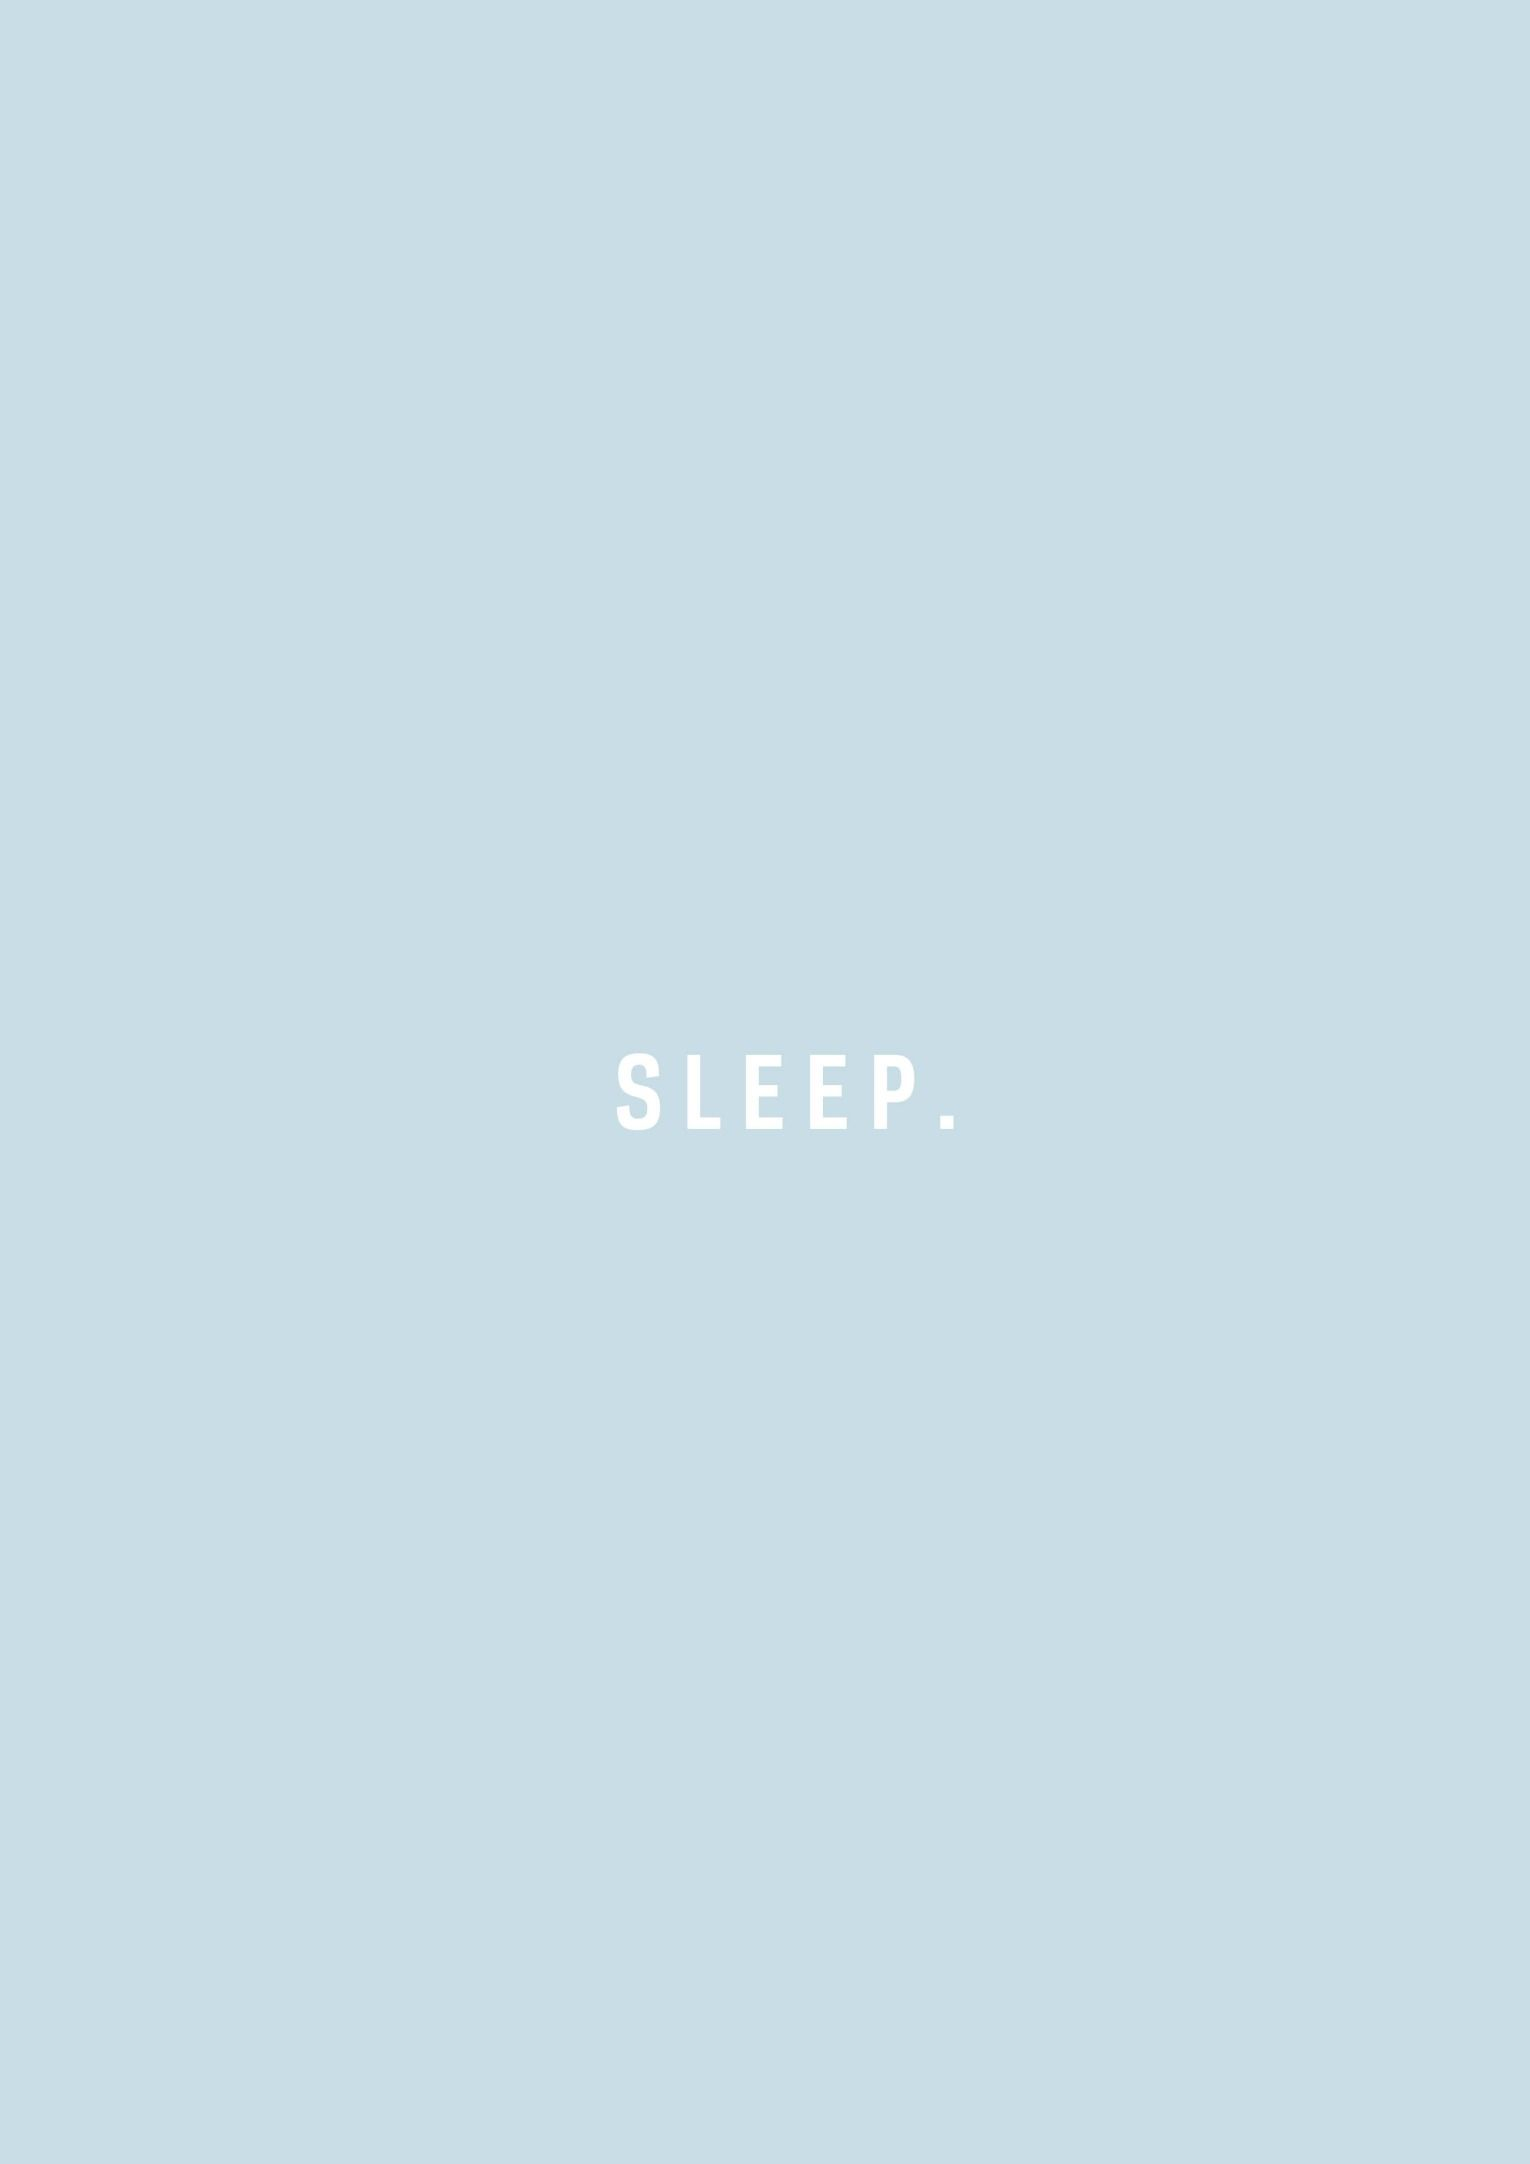 Join Our Pinterest Fam Skinnymetea 130k Wallpaper Quotes Iphone Wallpaper Aesthetic Wallpapers